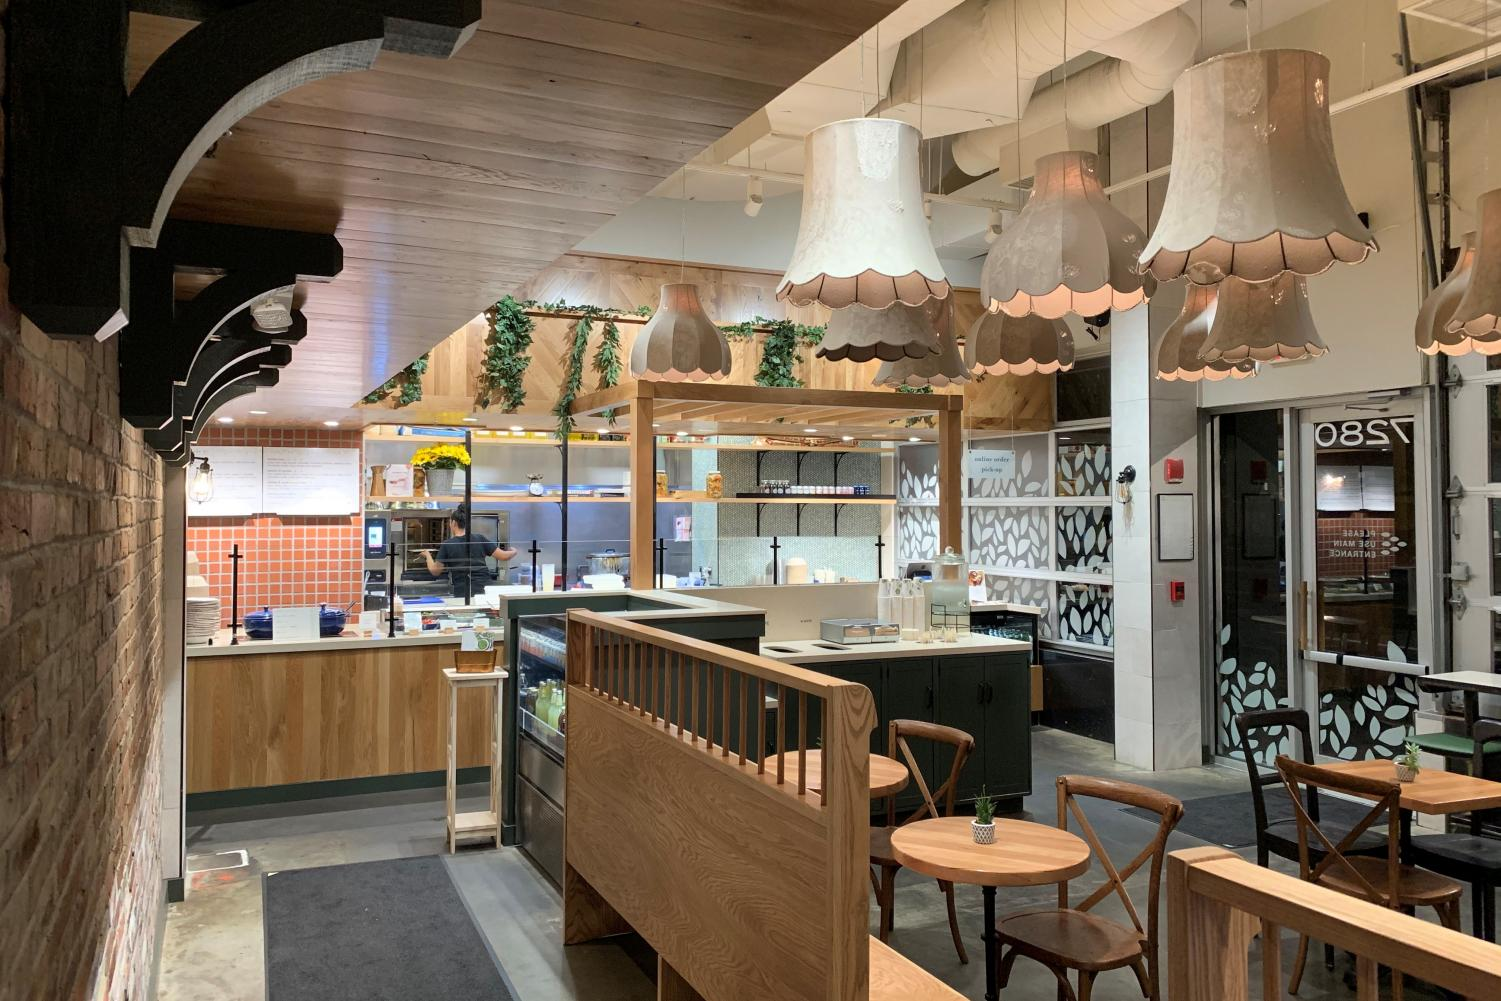 Prima recently opened in downtown Bethesda. The fast-casual restaurant serves a variety of bowls, all gluten-free.